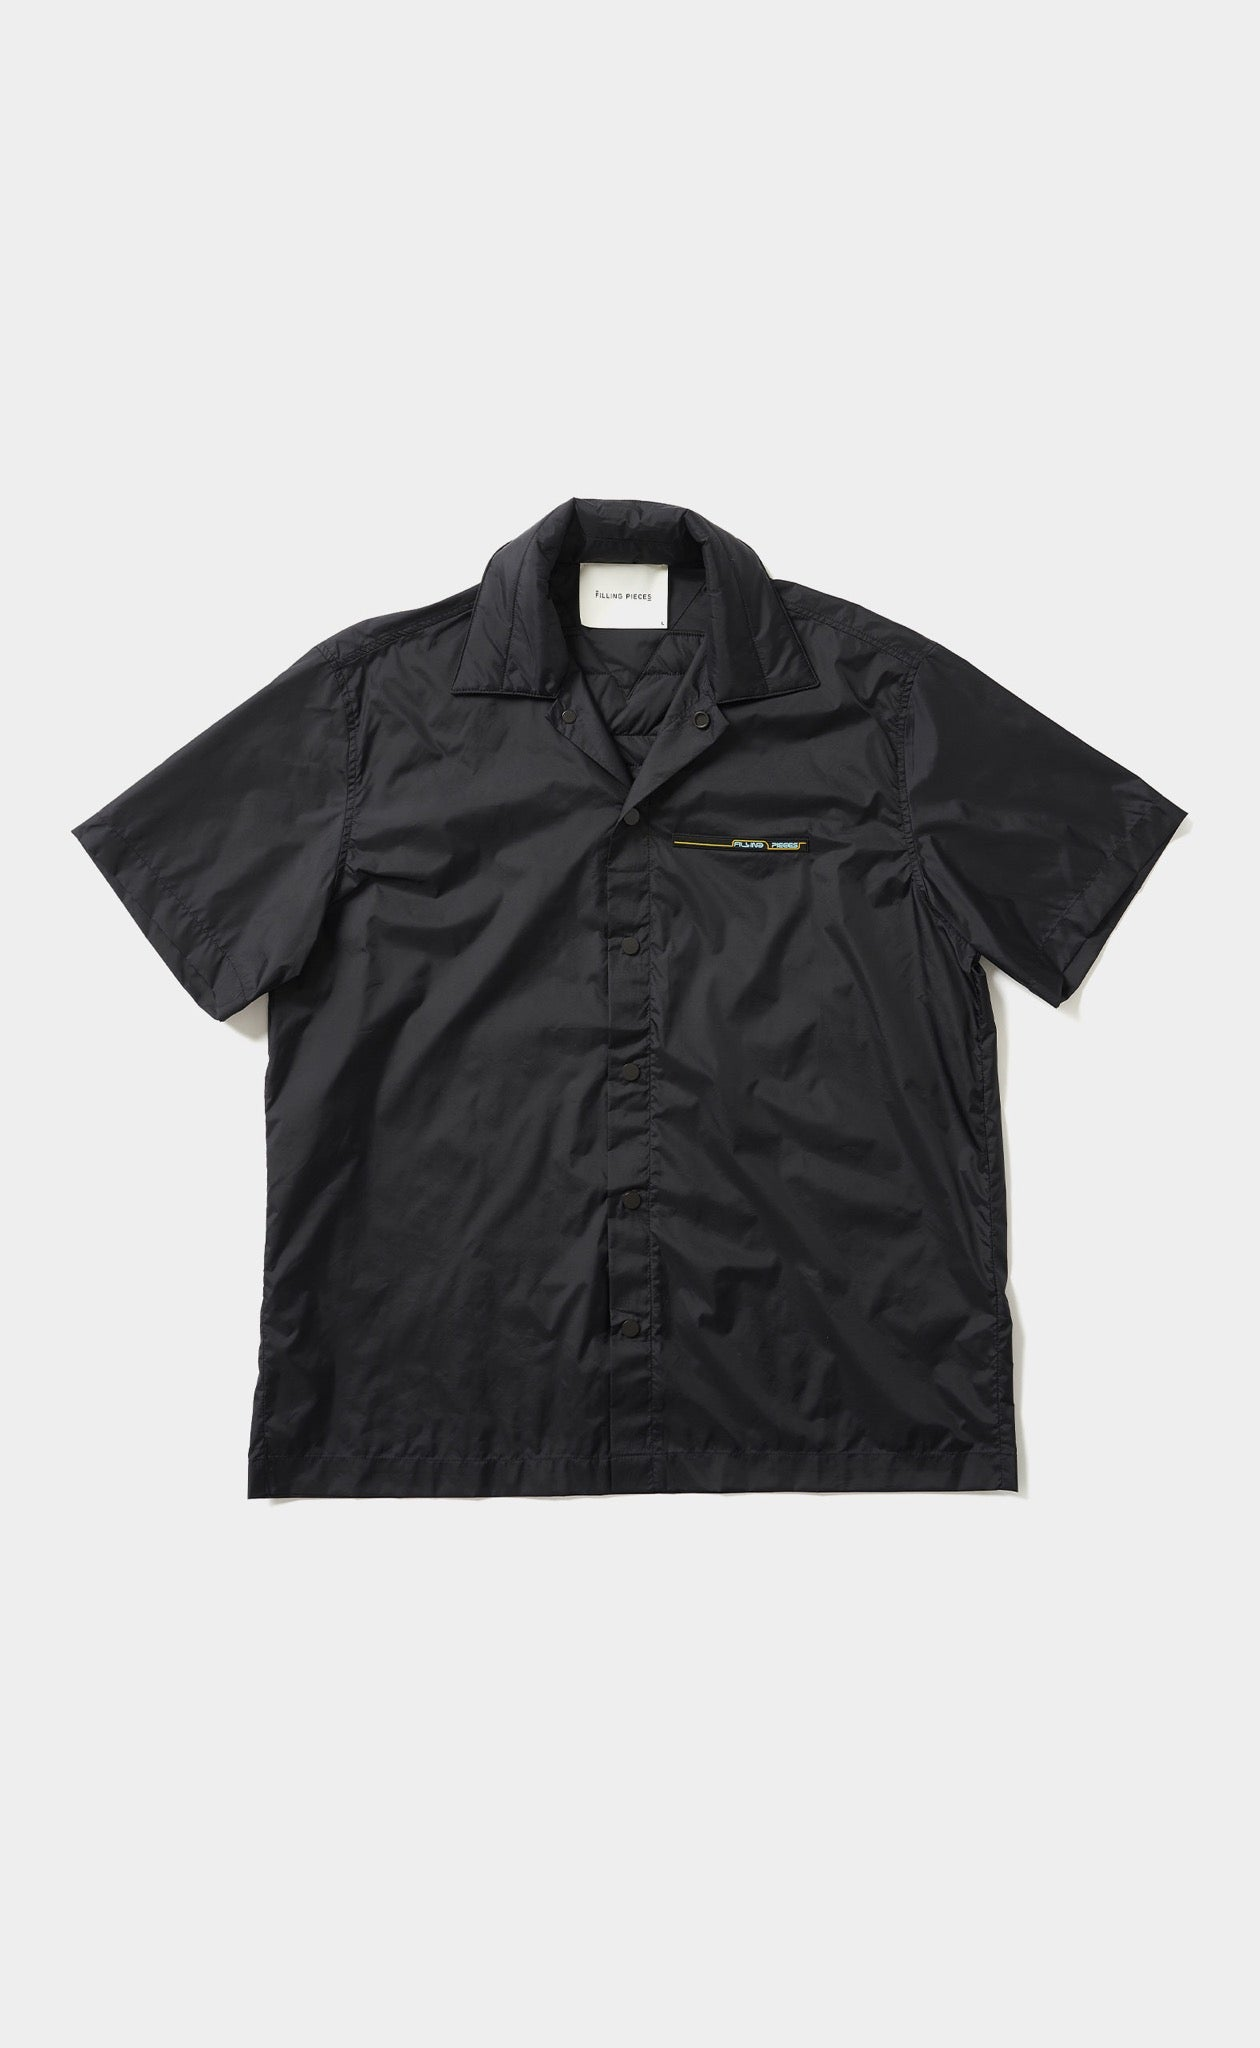 Padded Short Sleeve Black